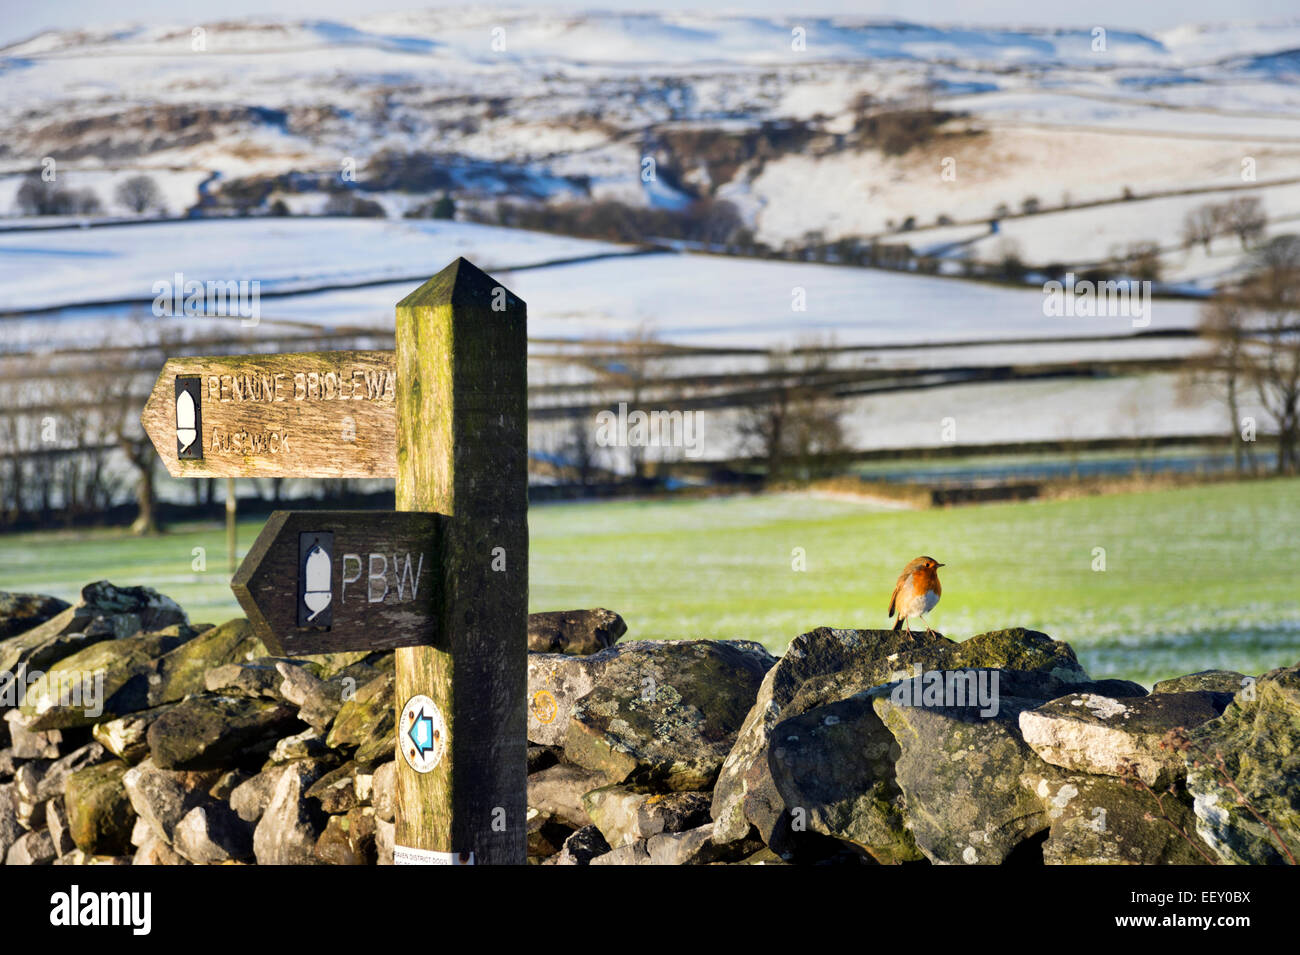 The Pennine Bridleway, with robin on the wall, near Austwick, Yorkshire Dales National Park, North Yorkshire, UK - Stock Image